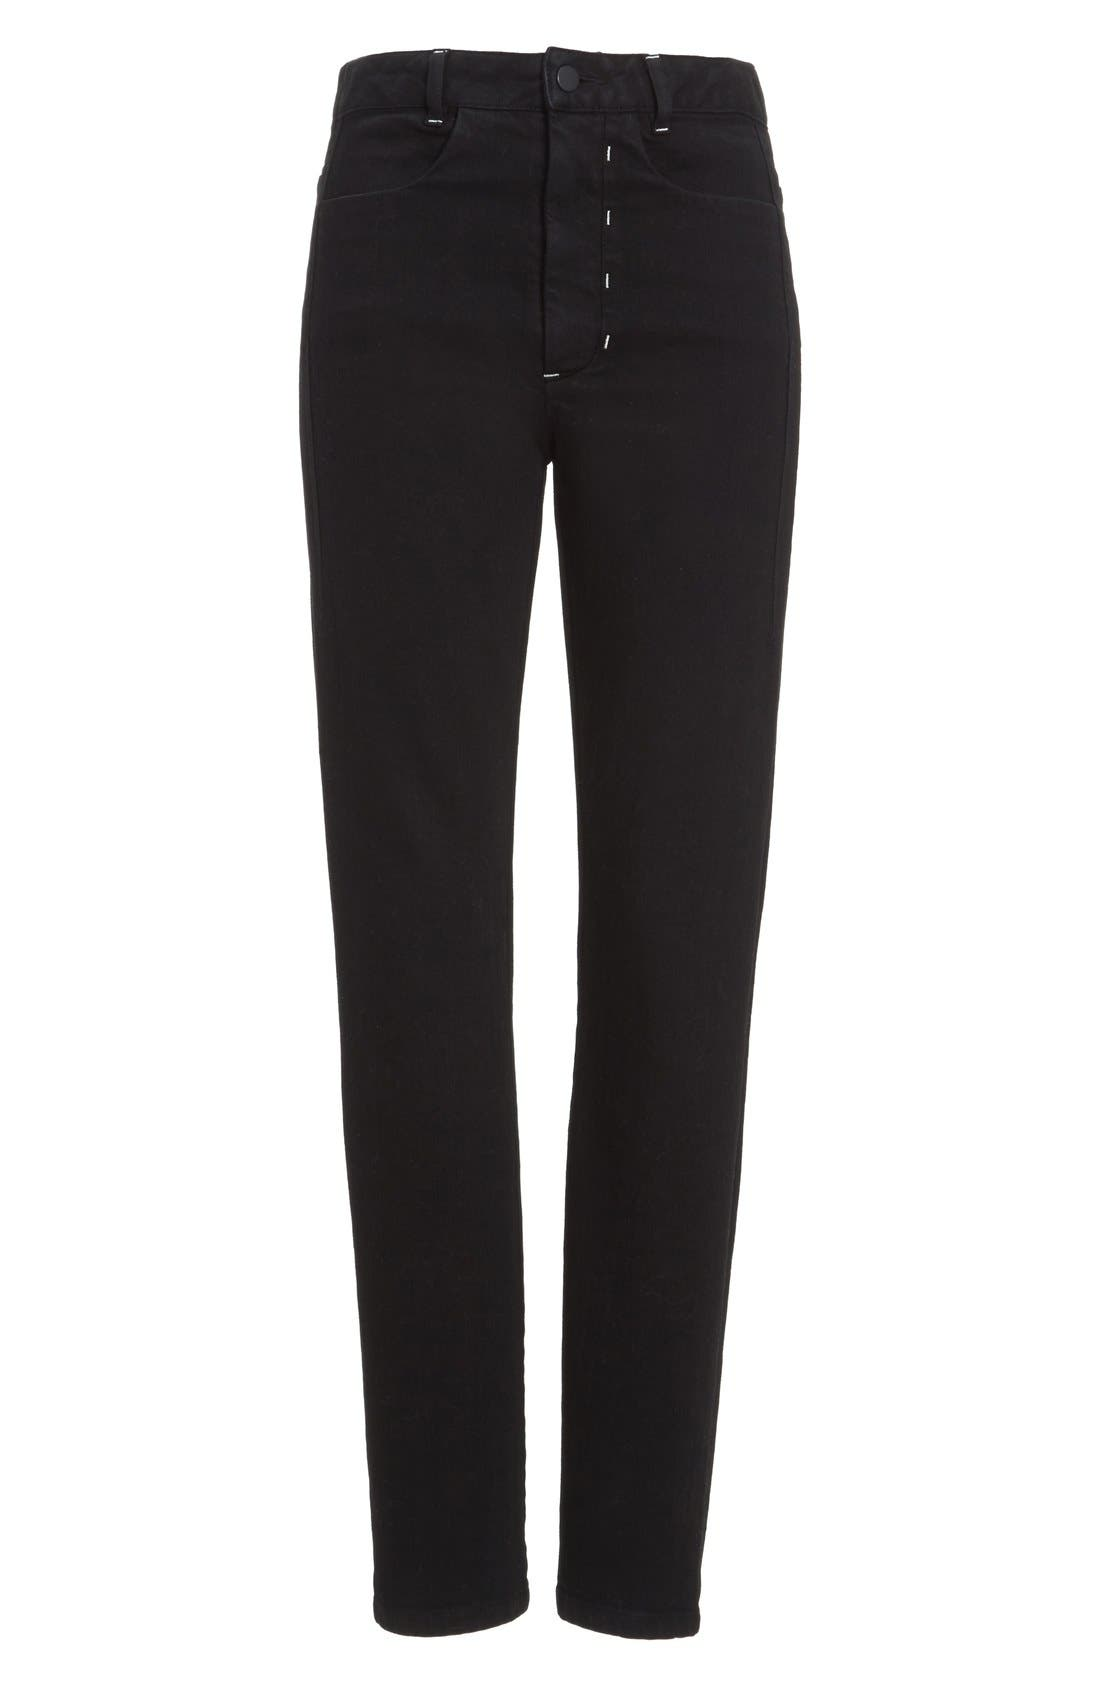 Stovepipe Stretch Jeans,                             Alternate thumbnail 4, color,                             001